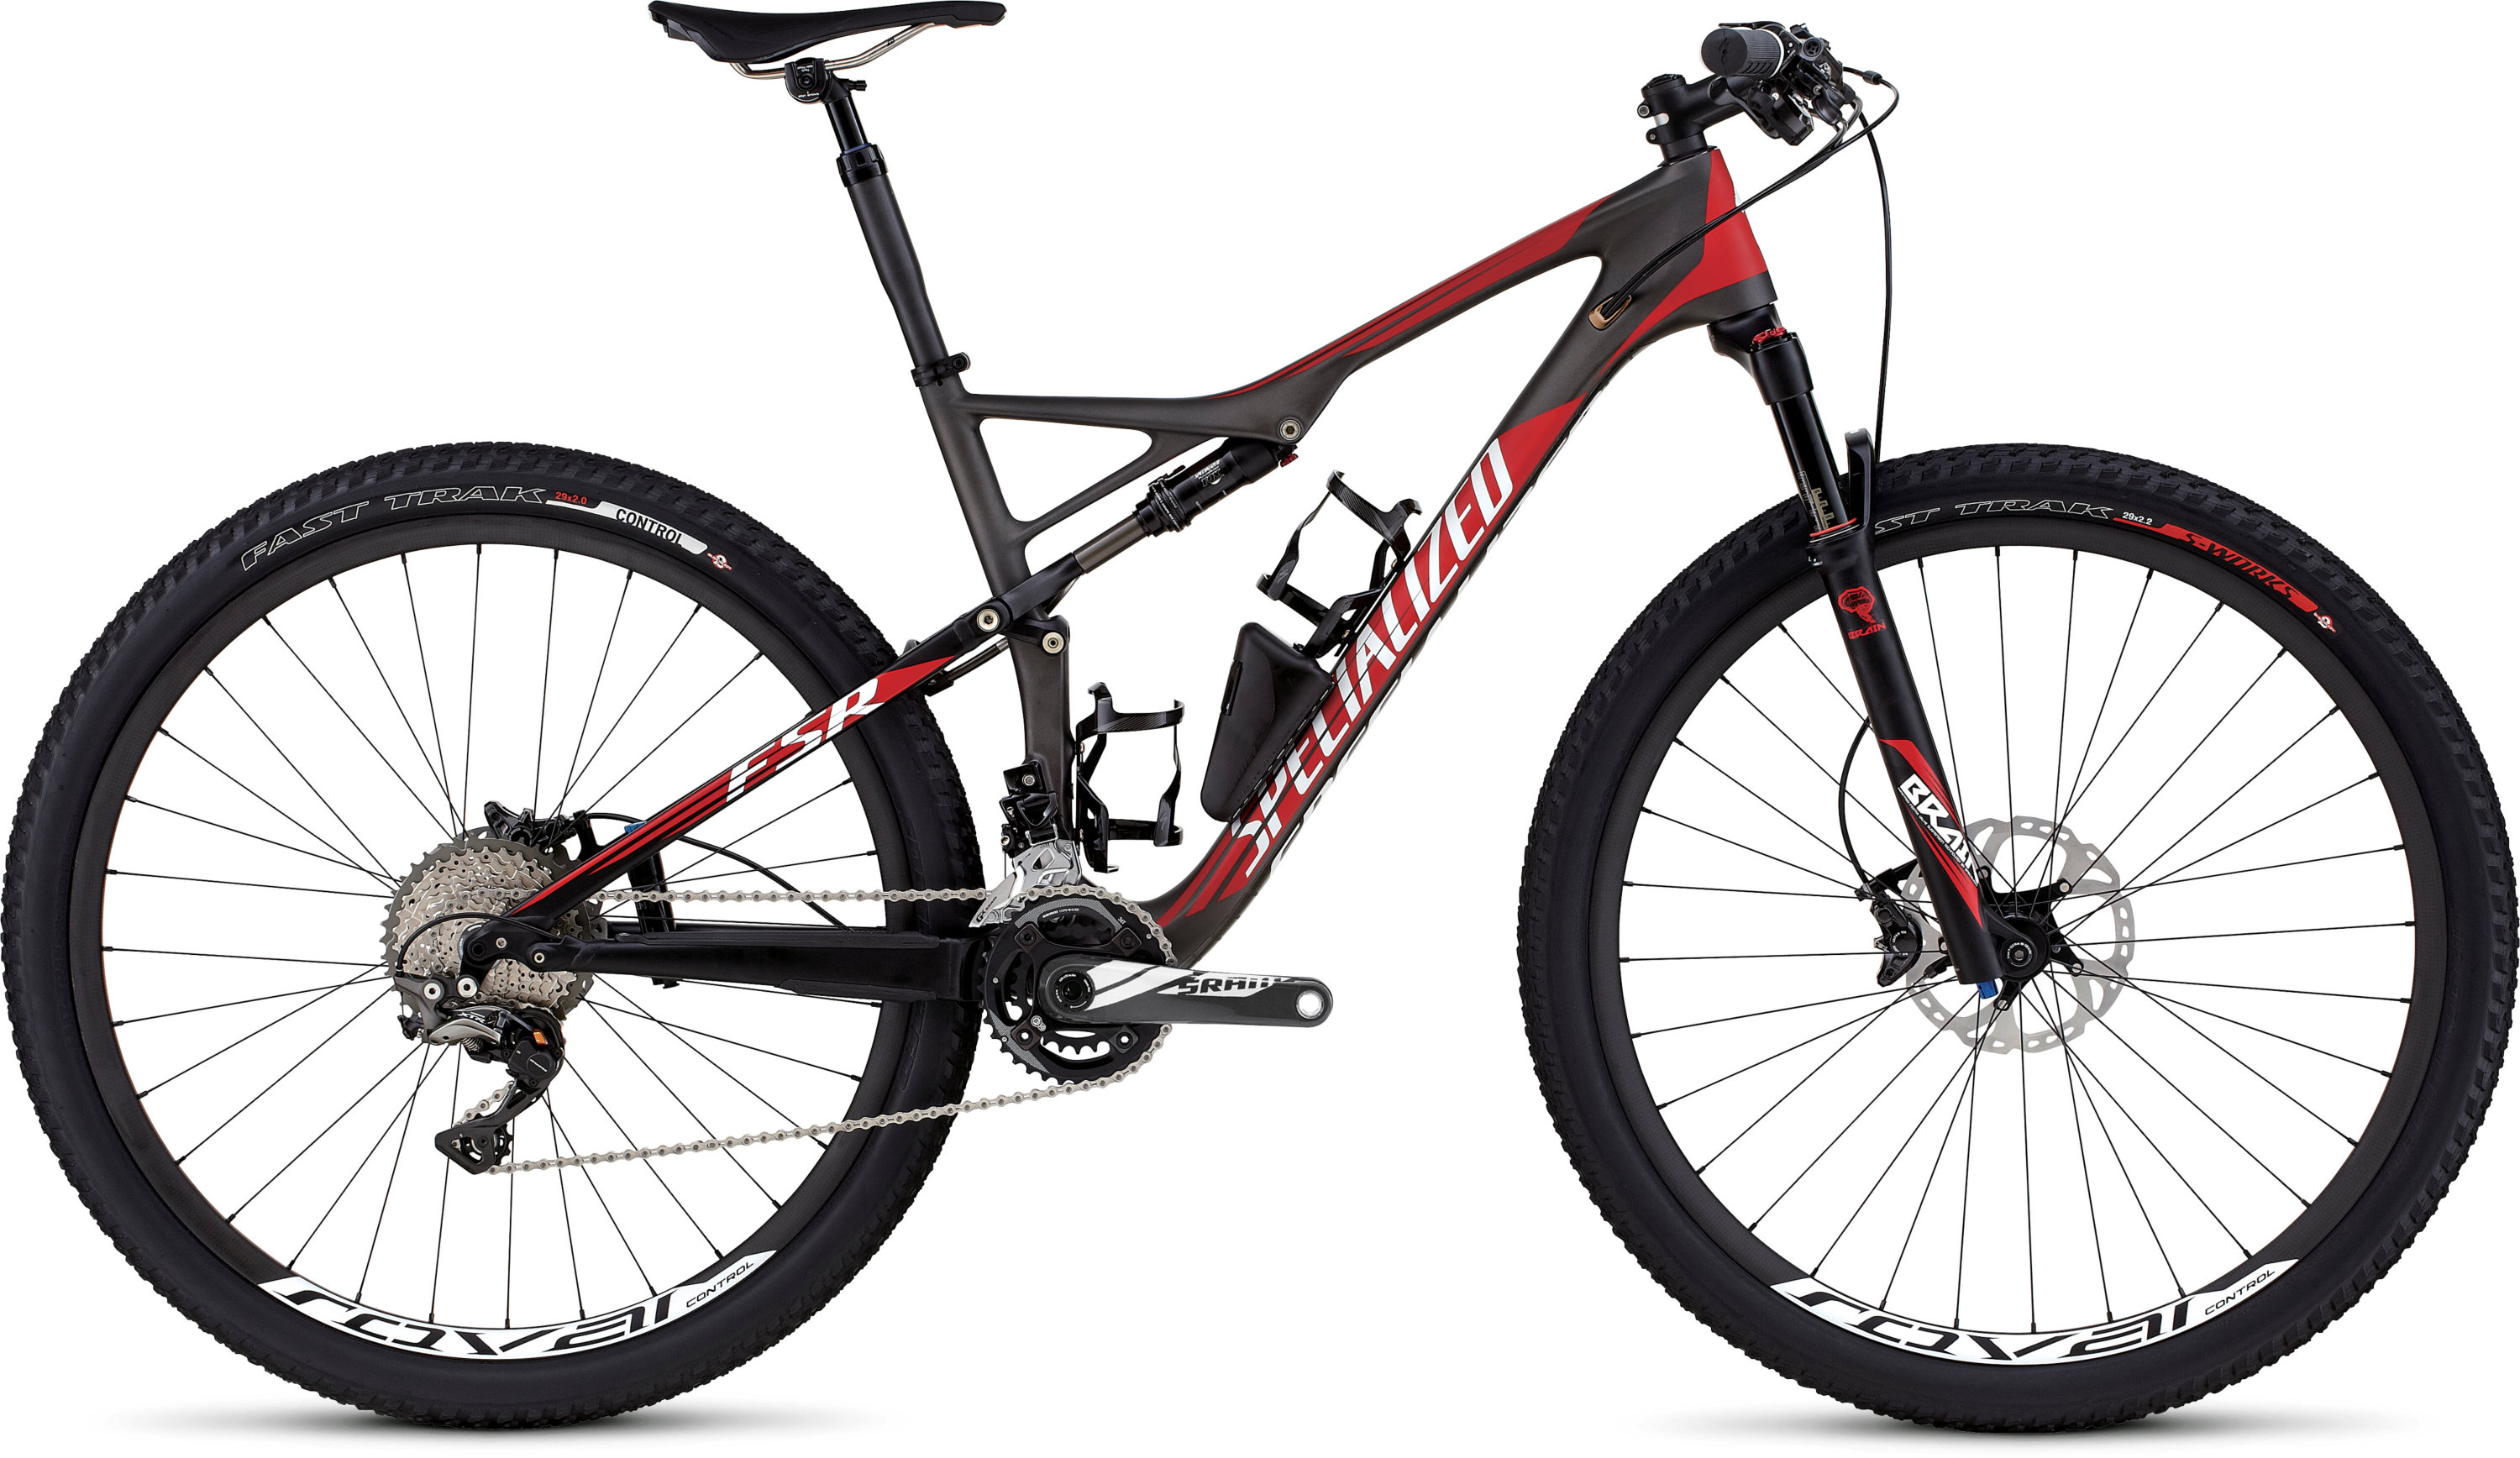 SPECIALIZED EPIC FSR EXPERT CARBON 29 CHARTNTCARB/RED/WHT S - Bikedreams & Dustbikes